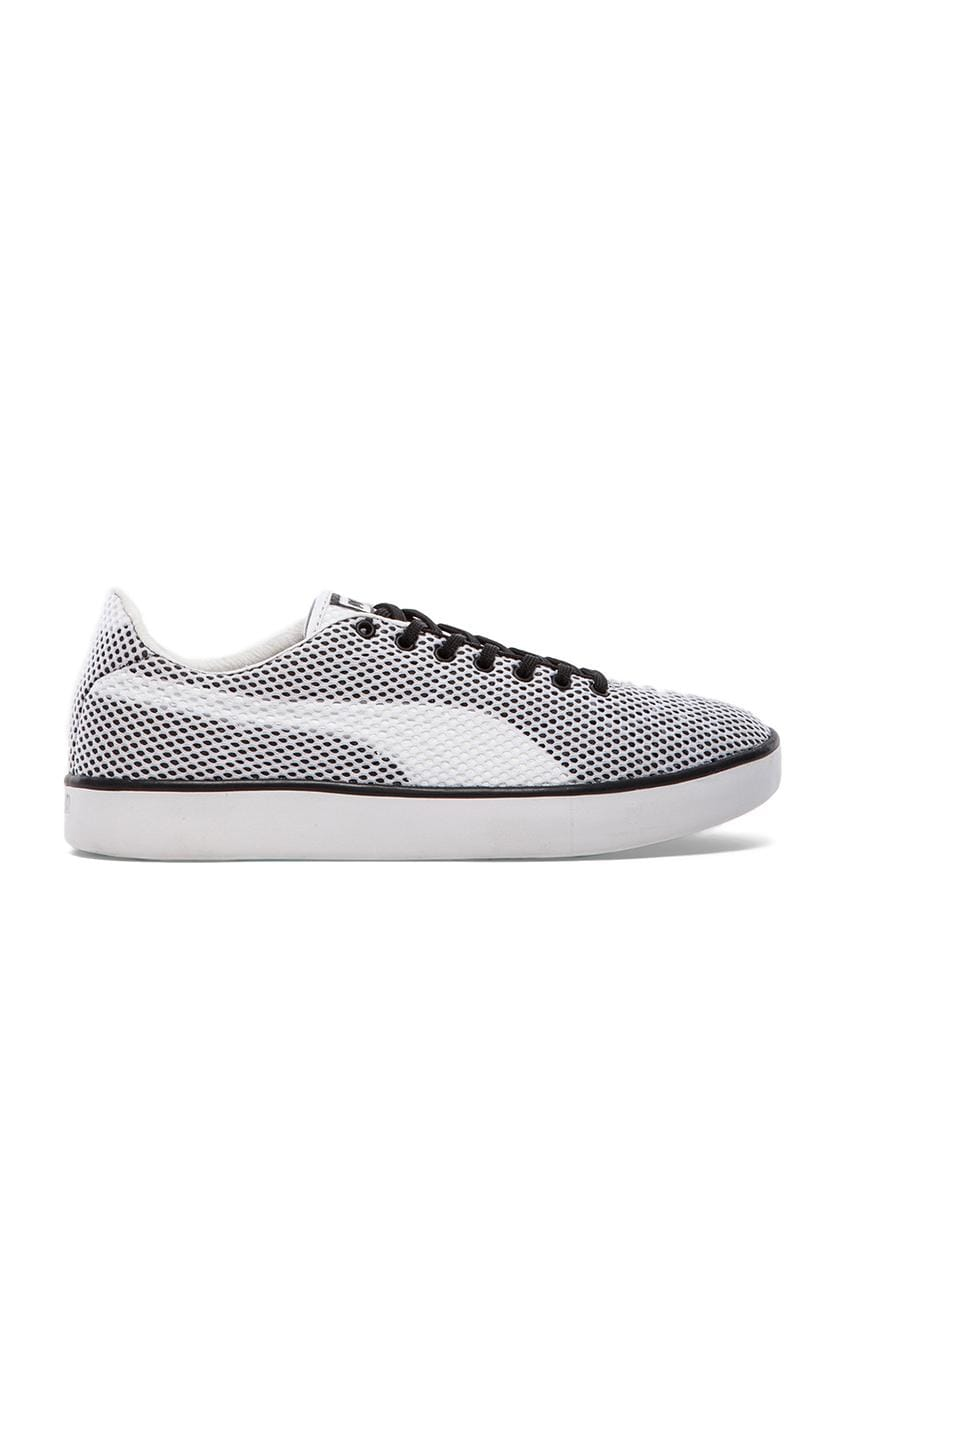 Puma by Mihara MY-76 in Black & White